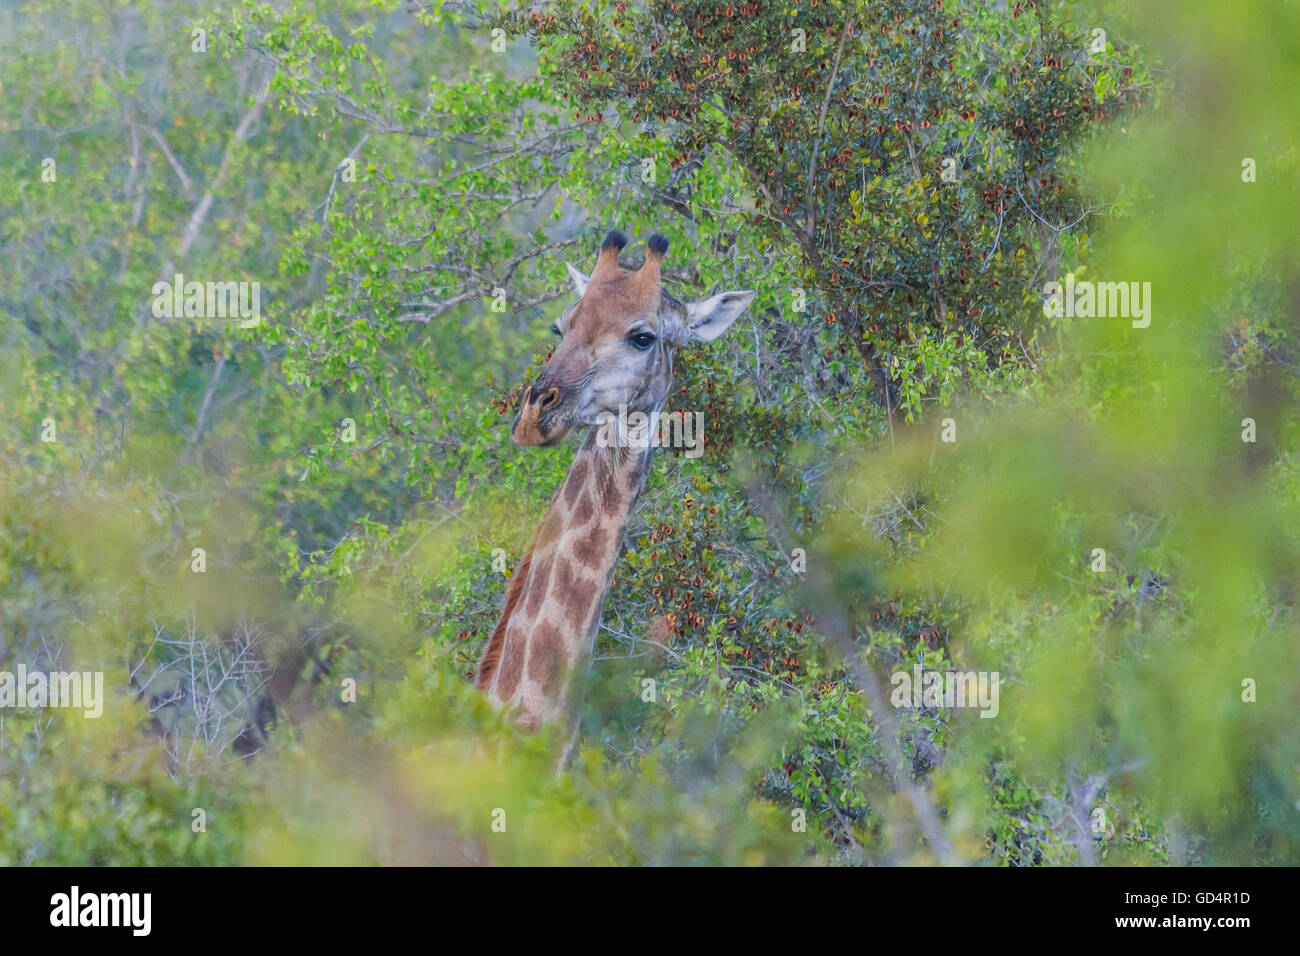 Giraffe sticking its head out from the trees in the bush - Stock Image